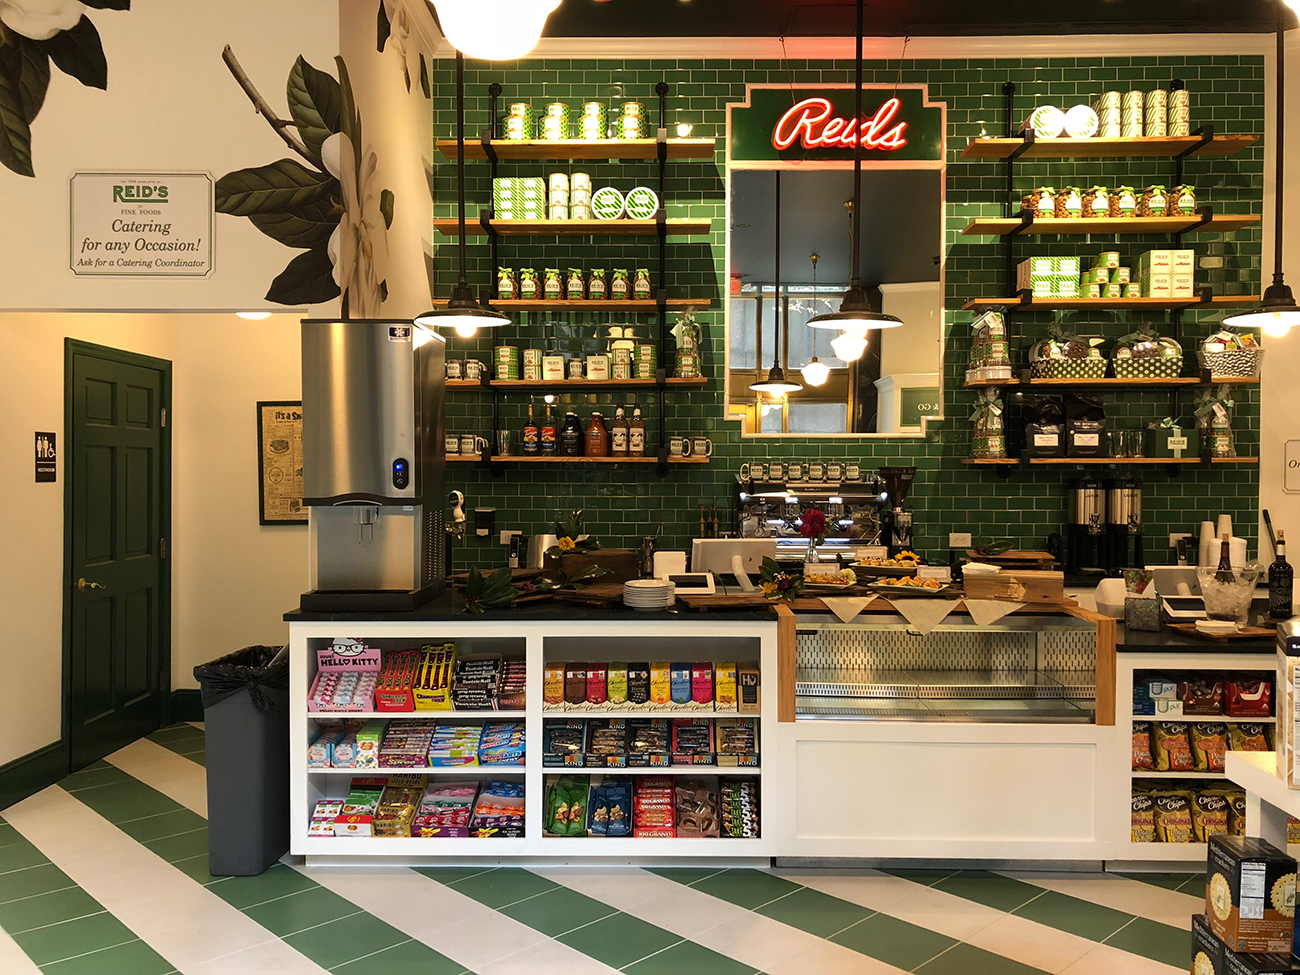 Reid's Fine Foods will open Uptown location Thursday, July 26 at 7 a.m.